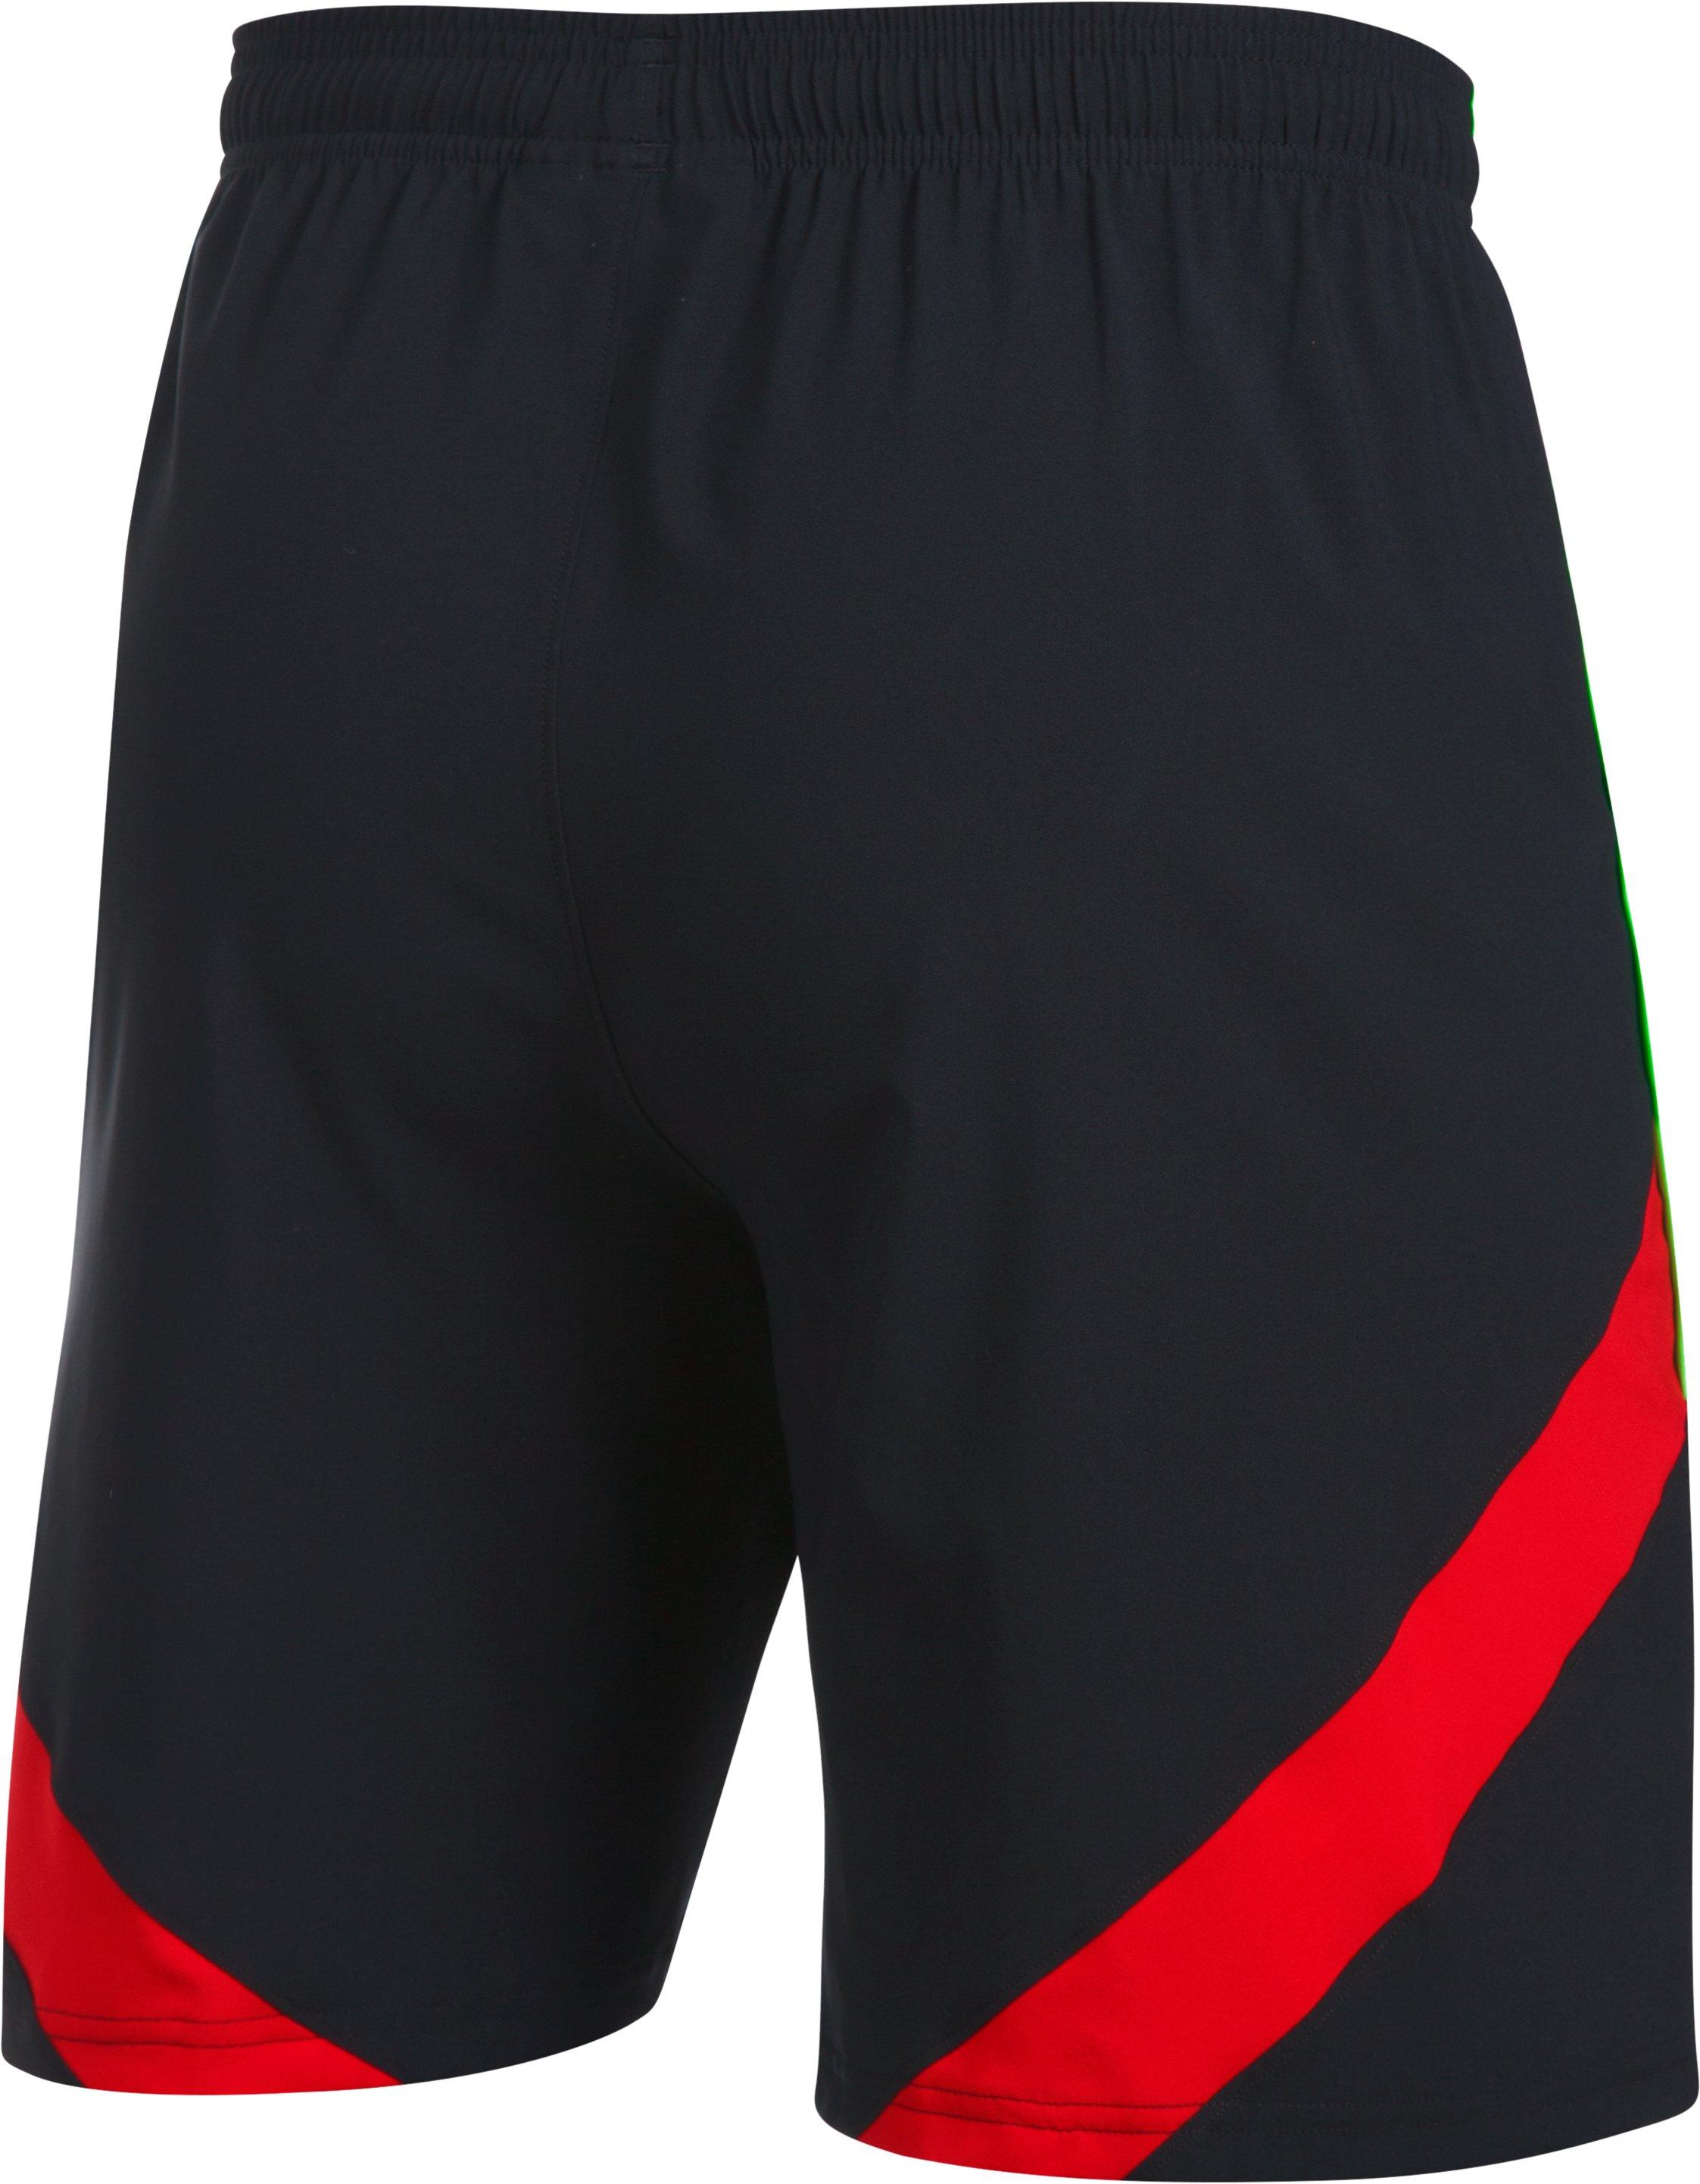 Men's Southampton Training Shorts, Black ,